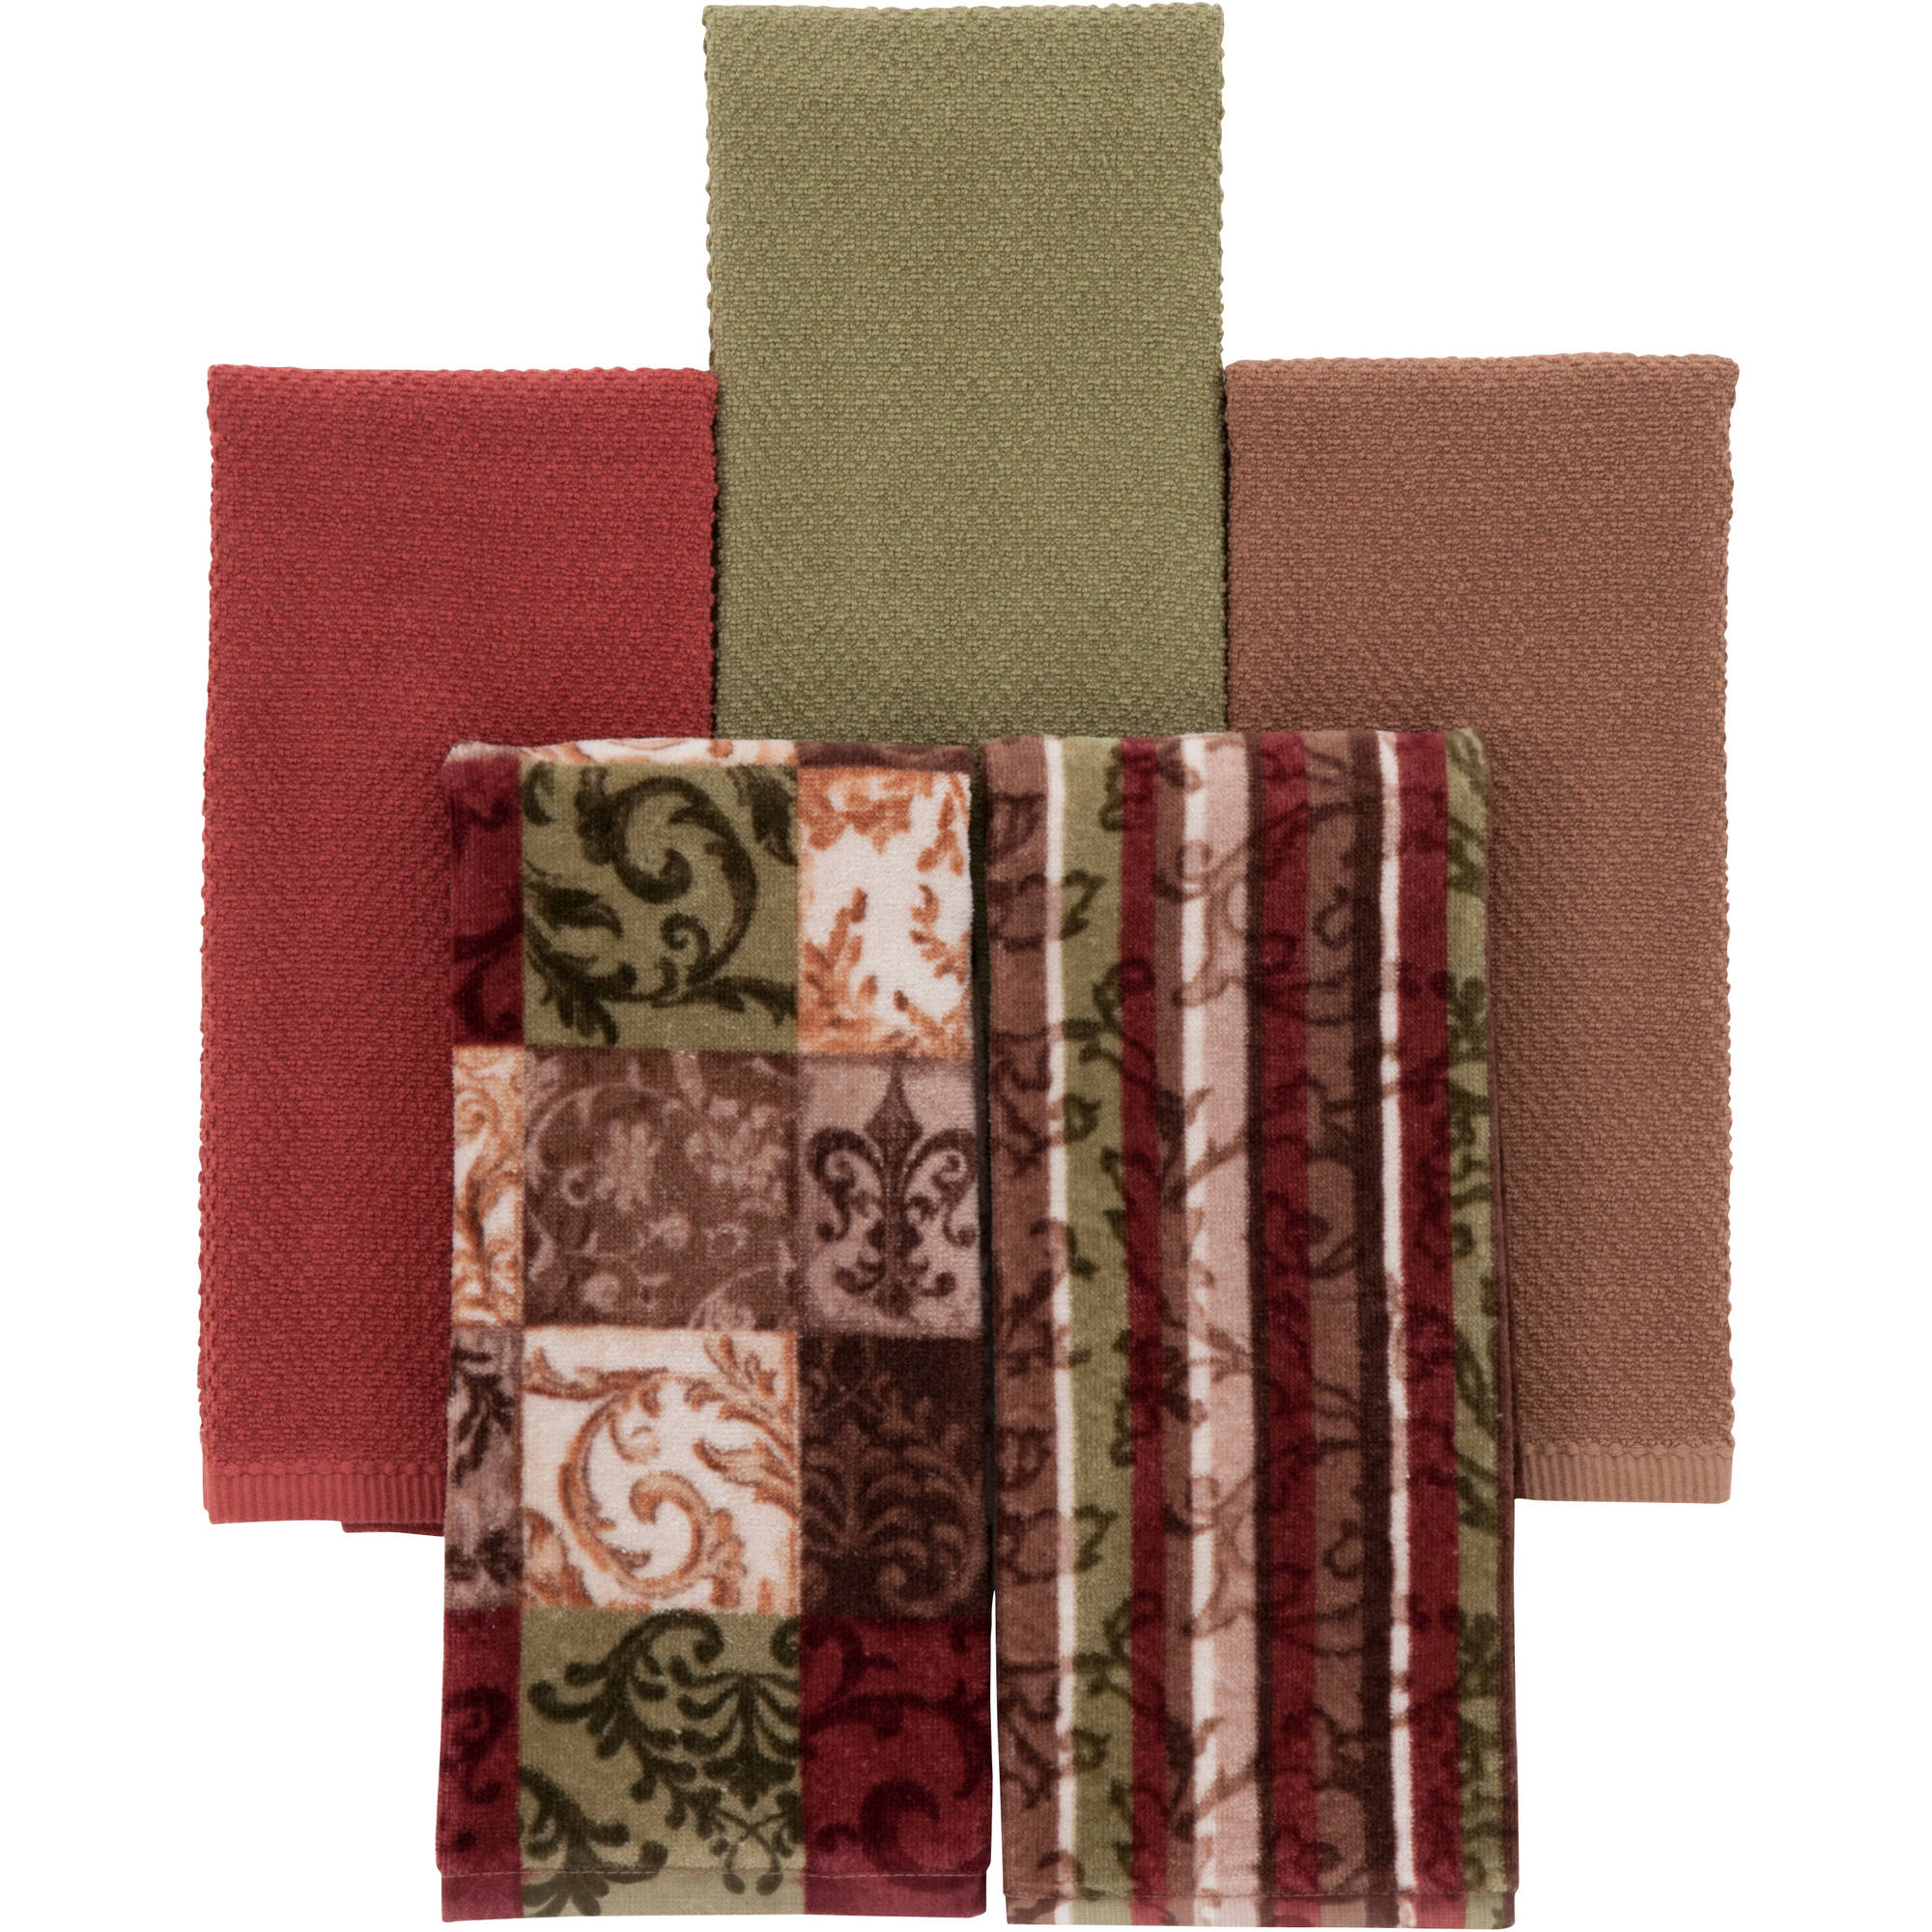 Mainstays Tuscany 5 Pack Kitchen Towels   Walmart.com